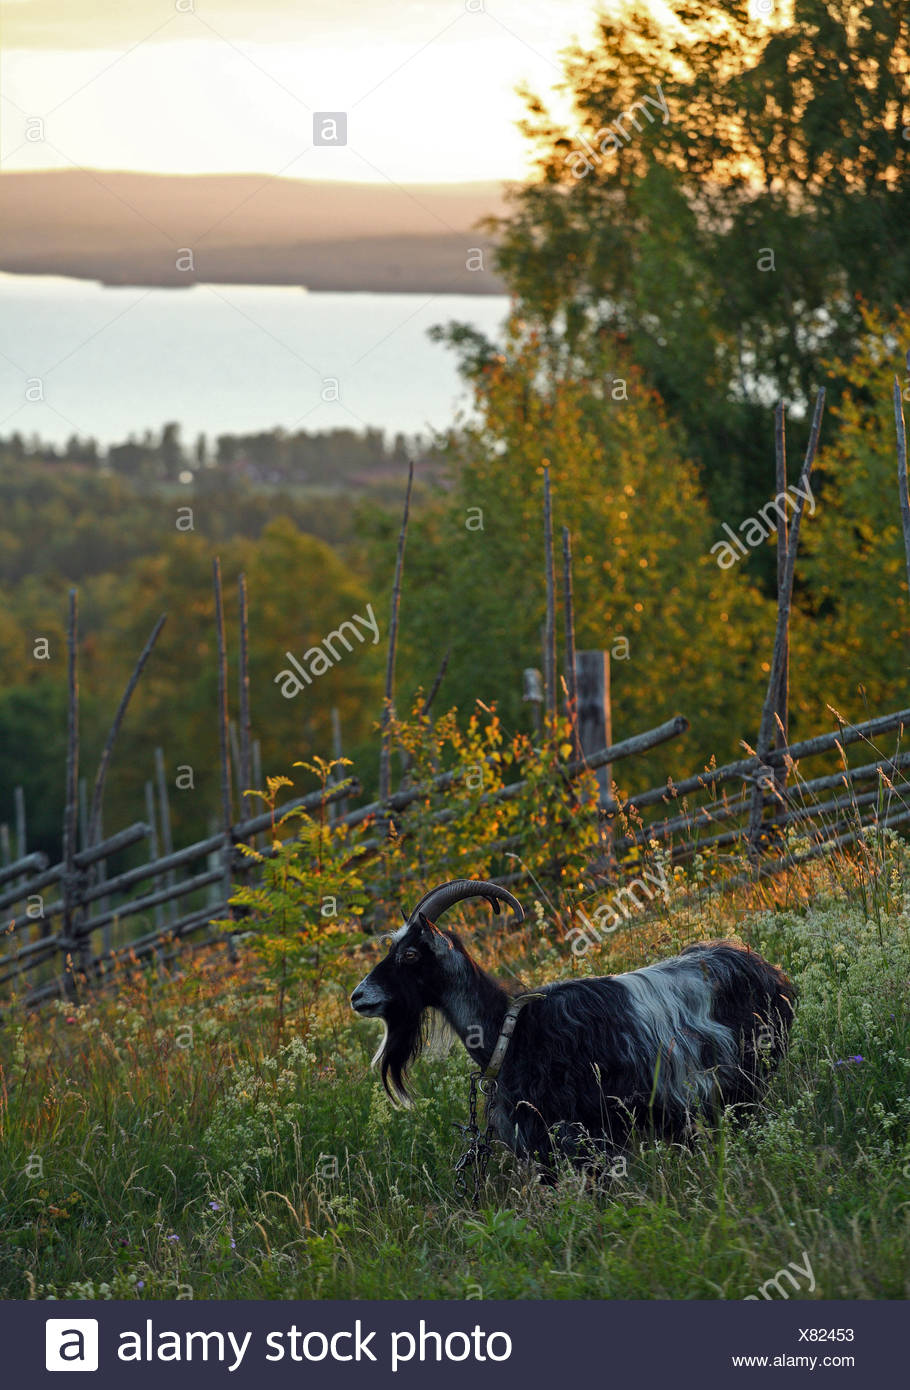 Side view of a buck grazing in a field with lake in the background - Stock Image